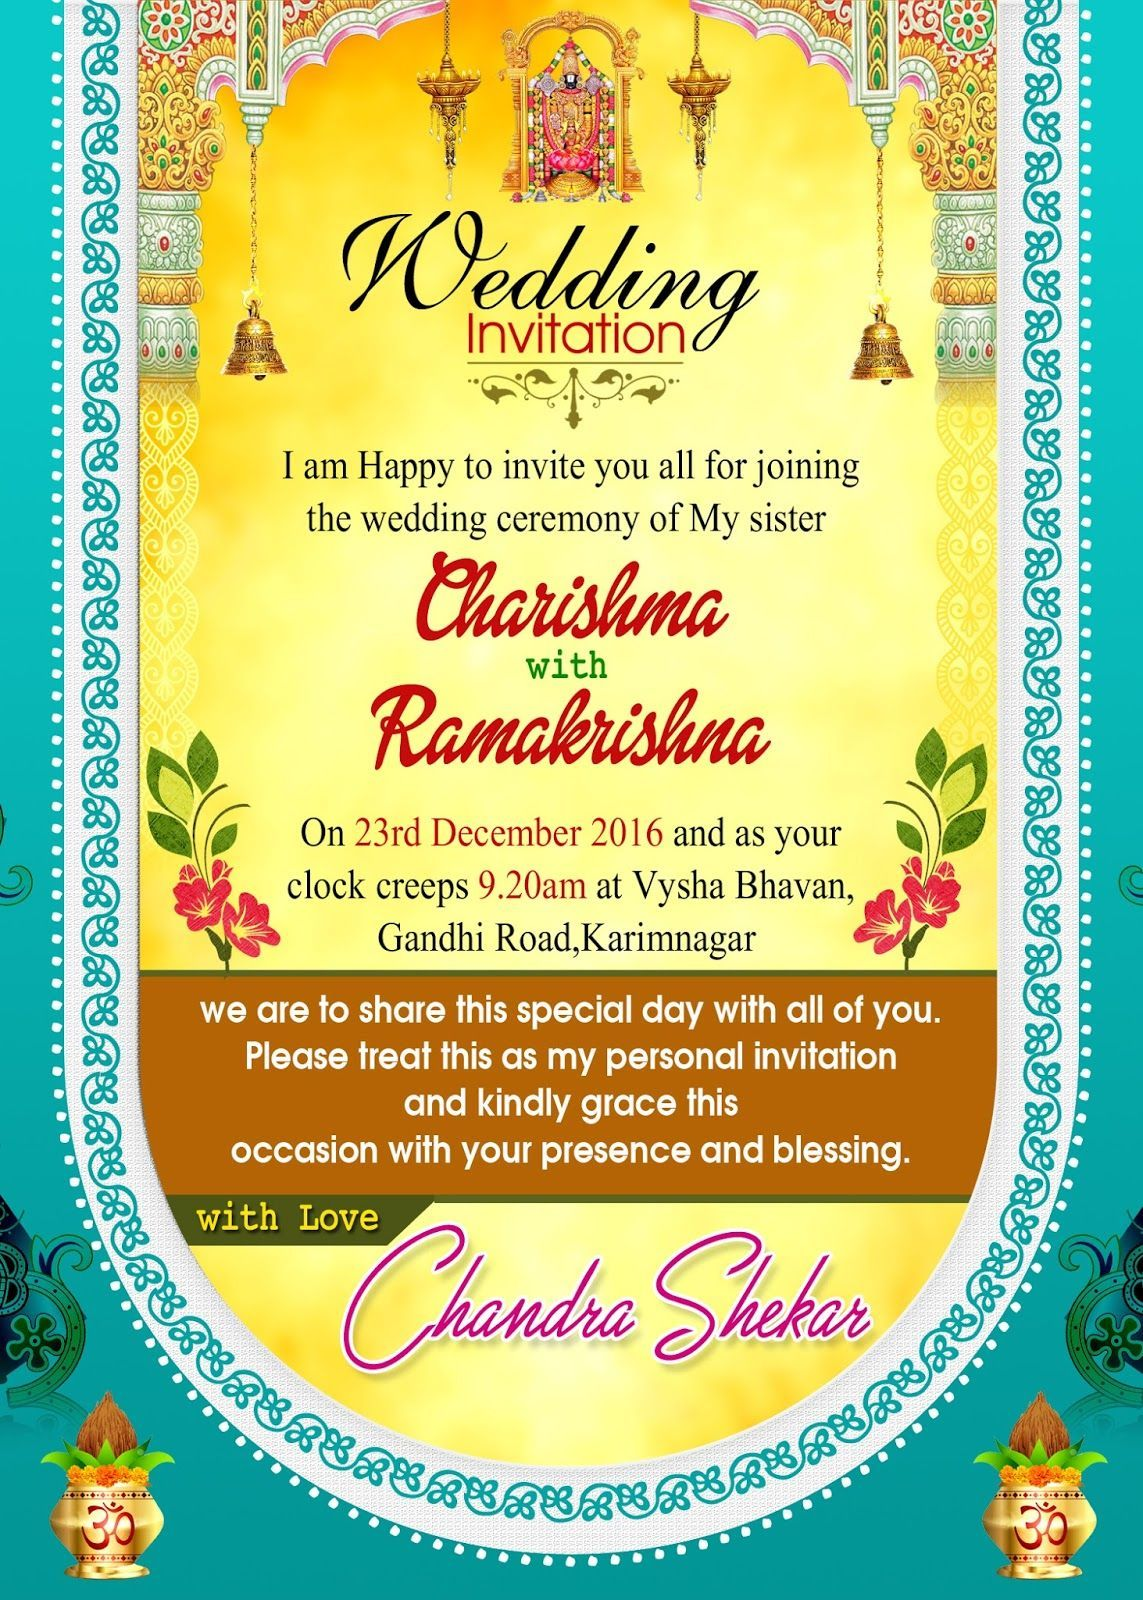 wedding invitation card psd file free design pinterest indian